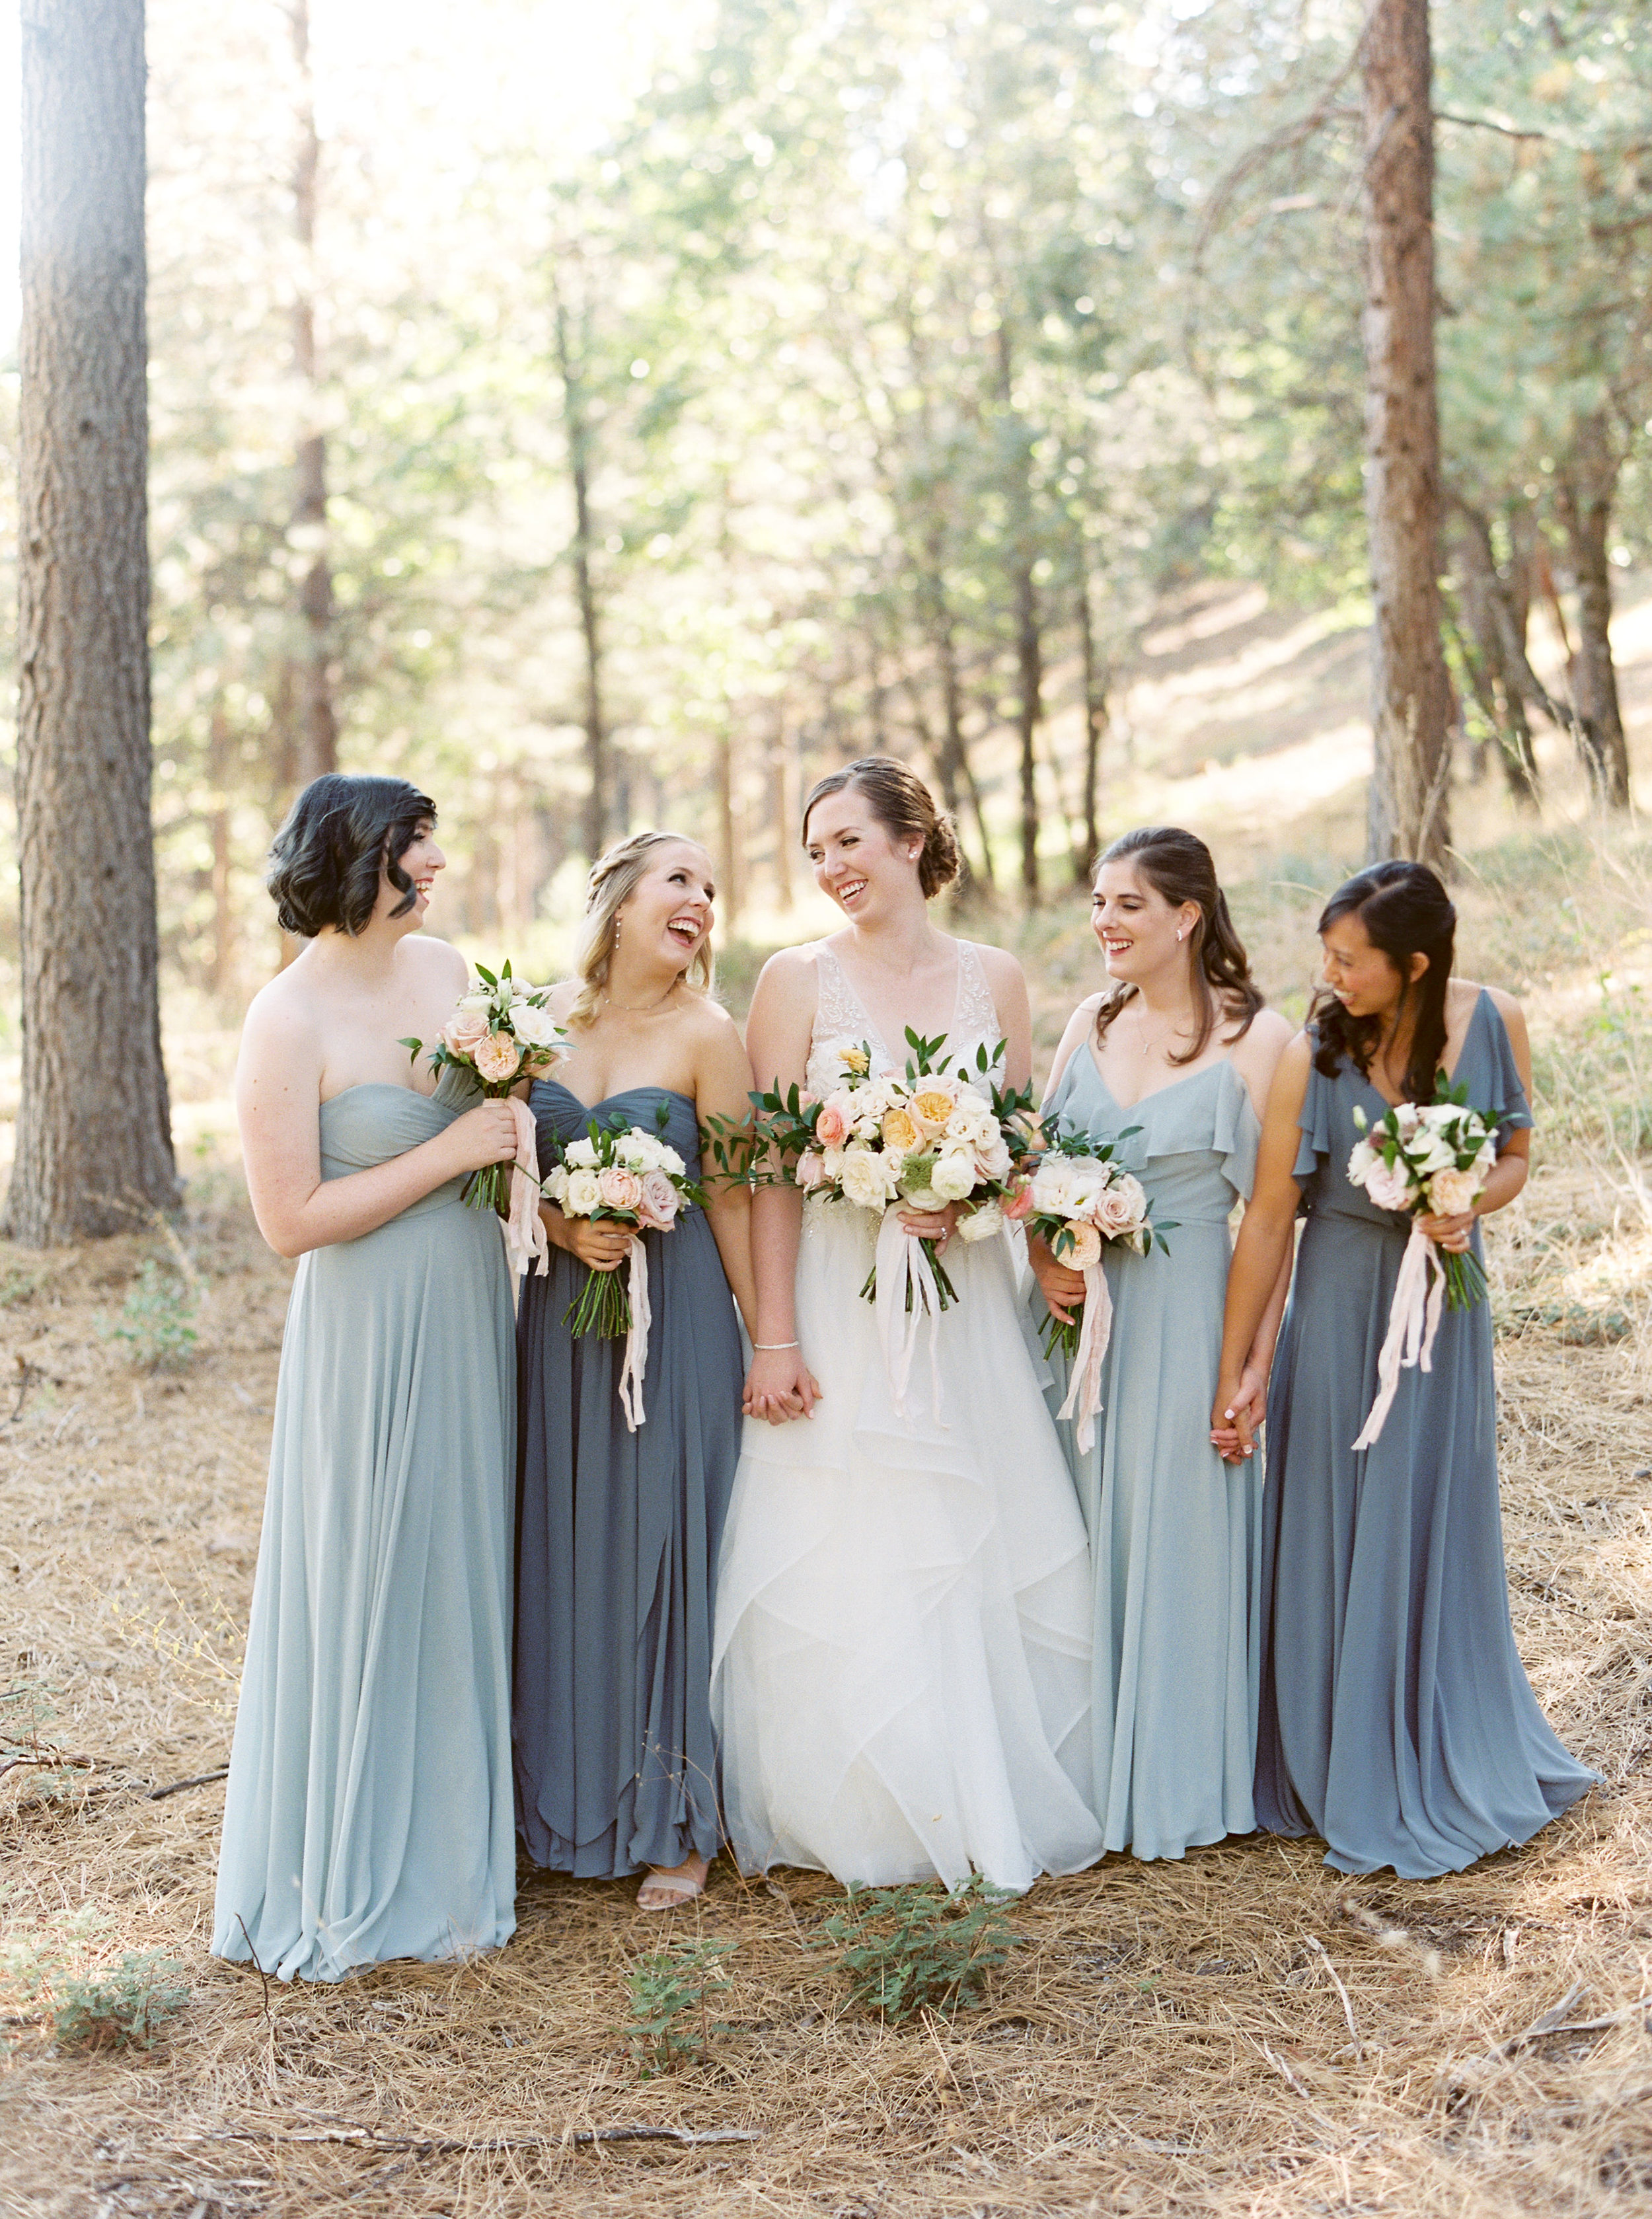 Forest-house-lodge-wedding-foresthill-california-3.jpg